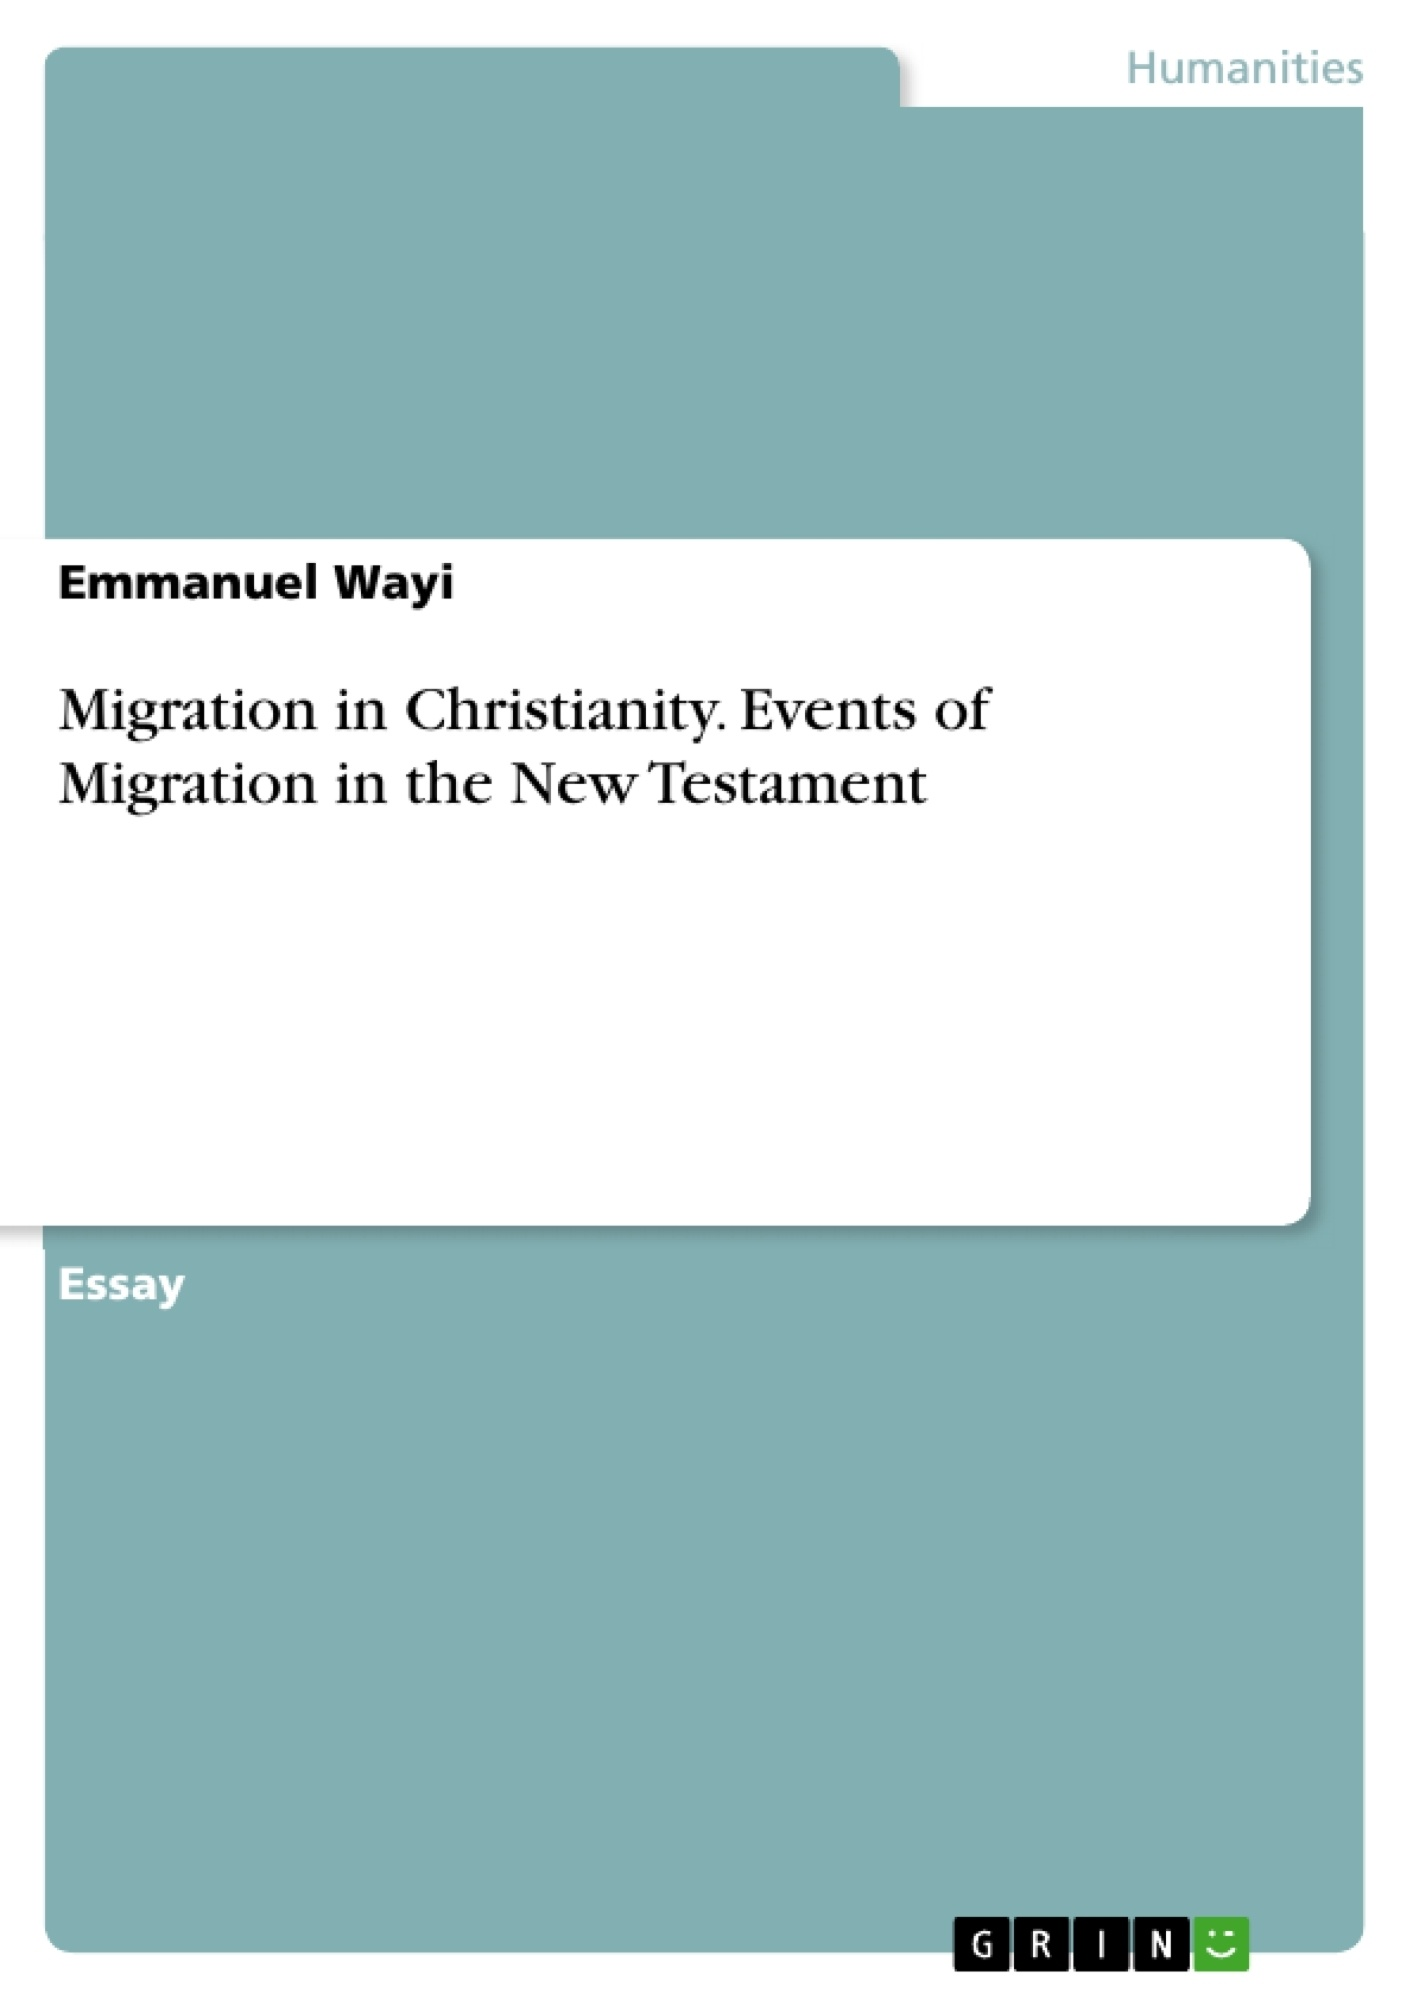 Title: Migration in Christianity. Events of Migration in the New Testament